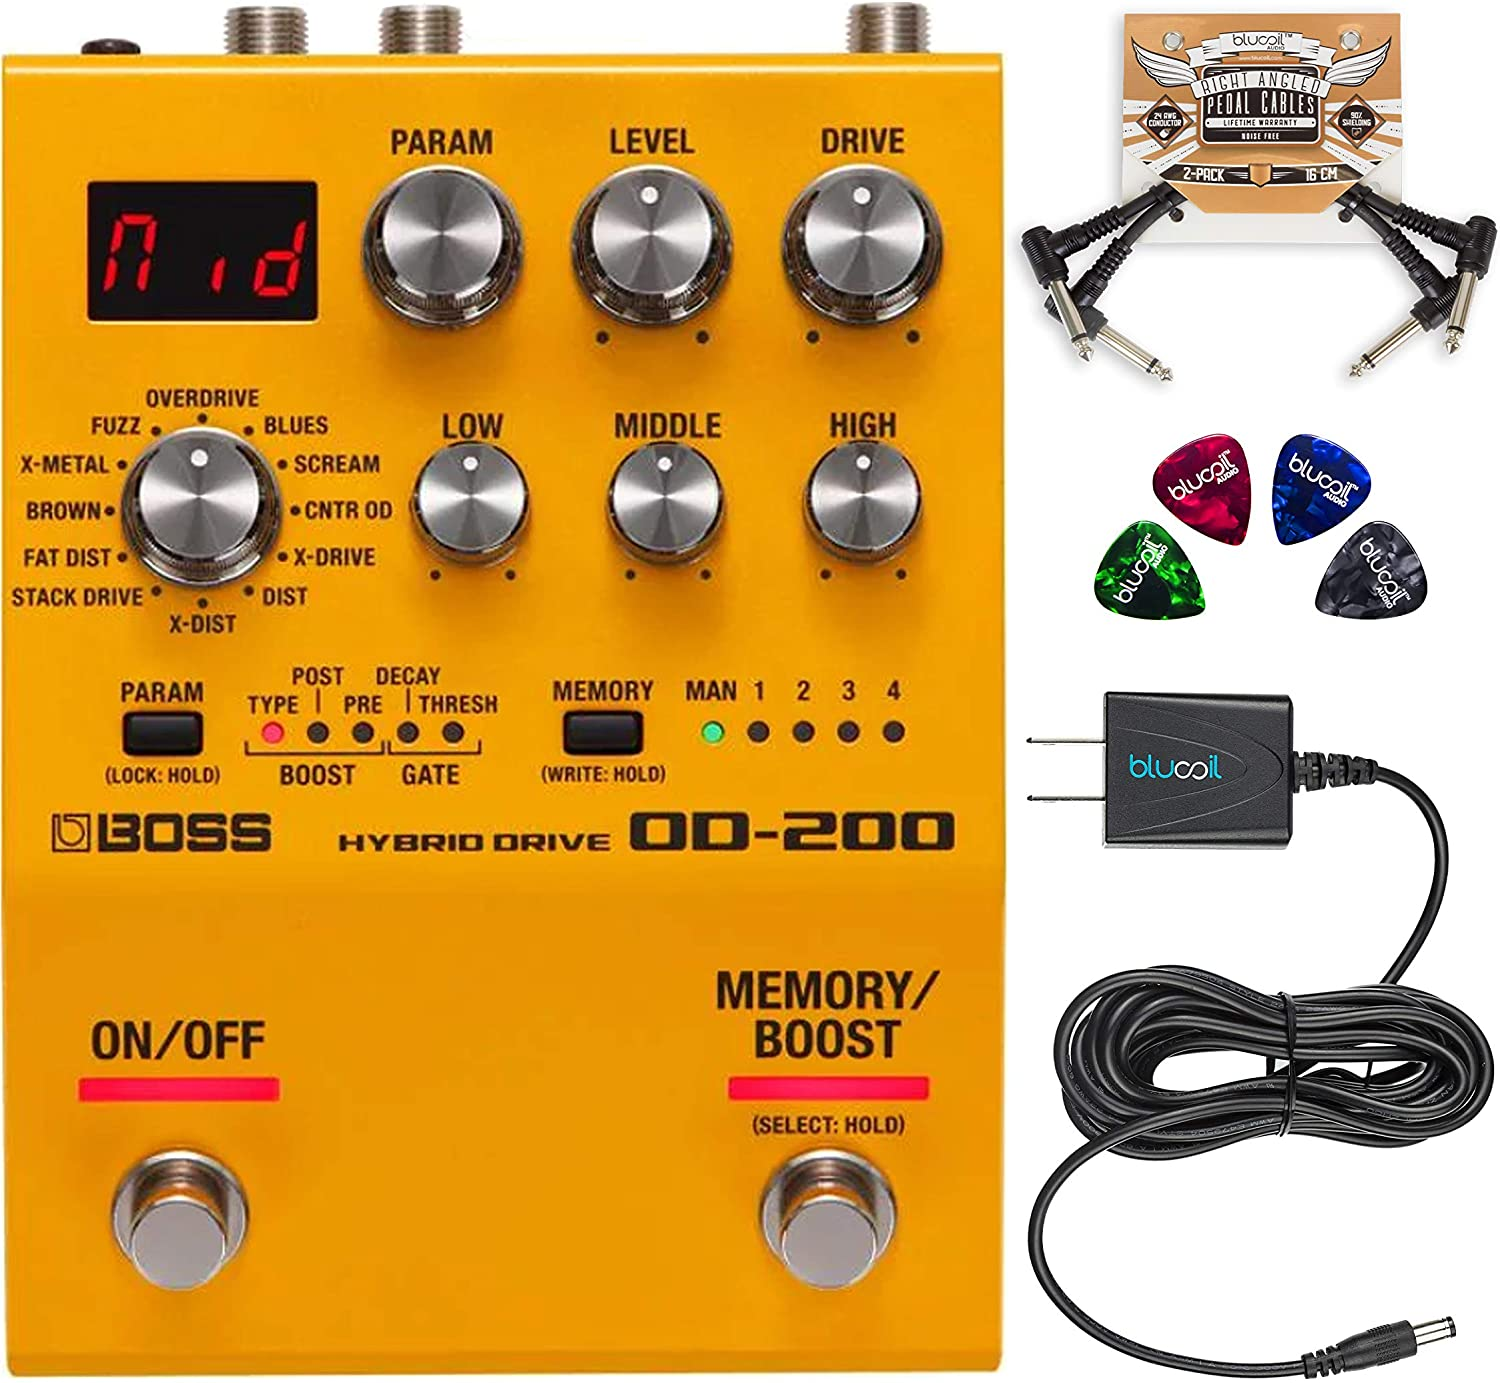 BOSS OD-200 Hybrid Drive Overdrive Distortion Pedal Bundle with Blucoil Slim 9V Power Supply AC Adapter, 2-Pack of Pedal Patch Cables, and 4-Pack of Celluloid Guitar Picks